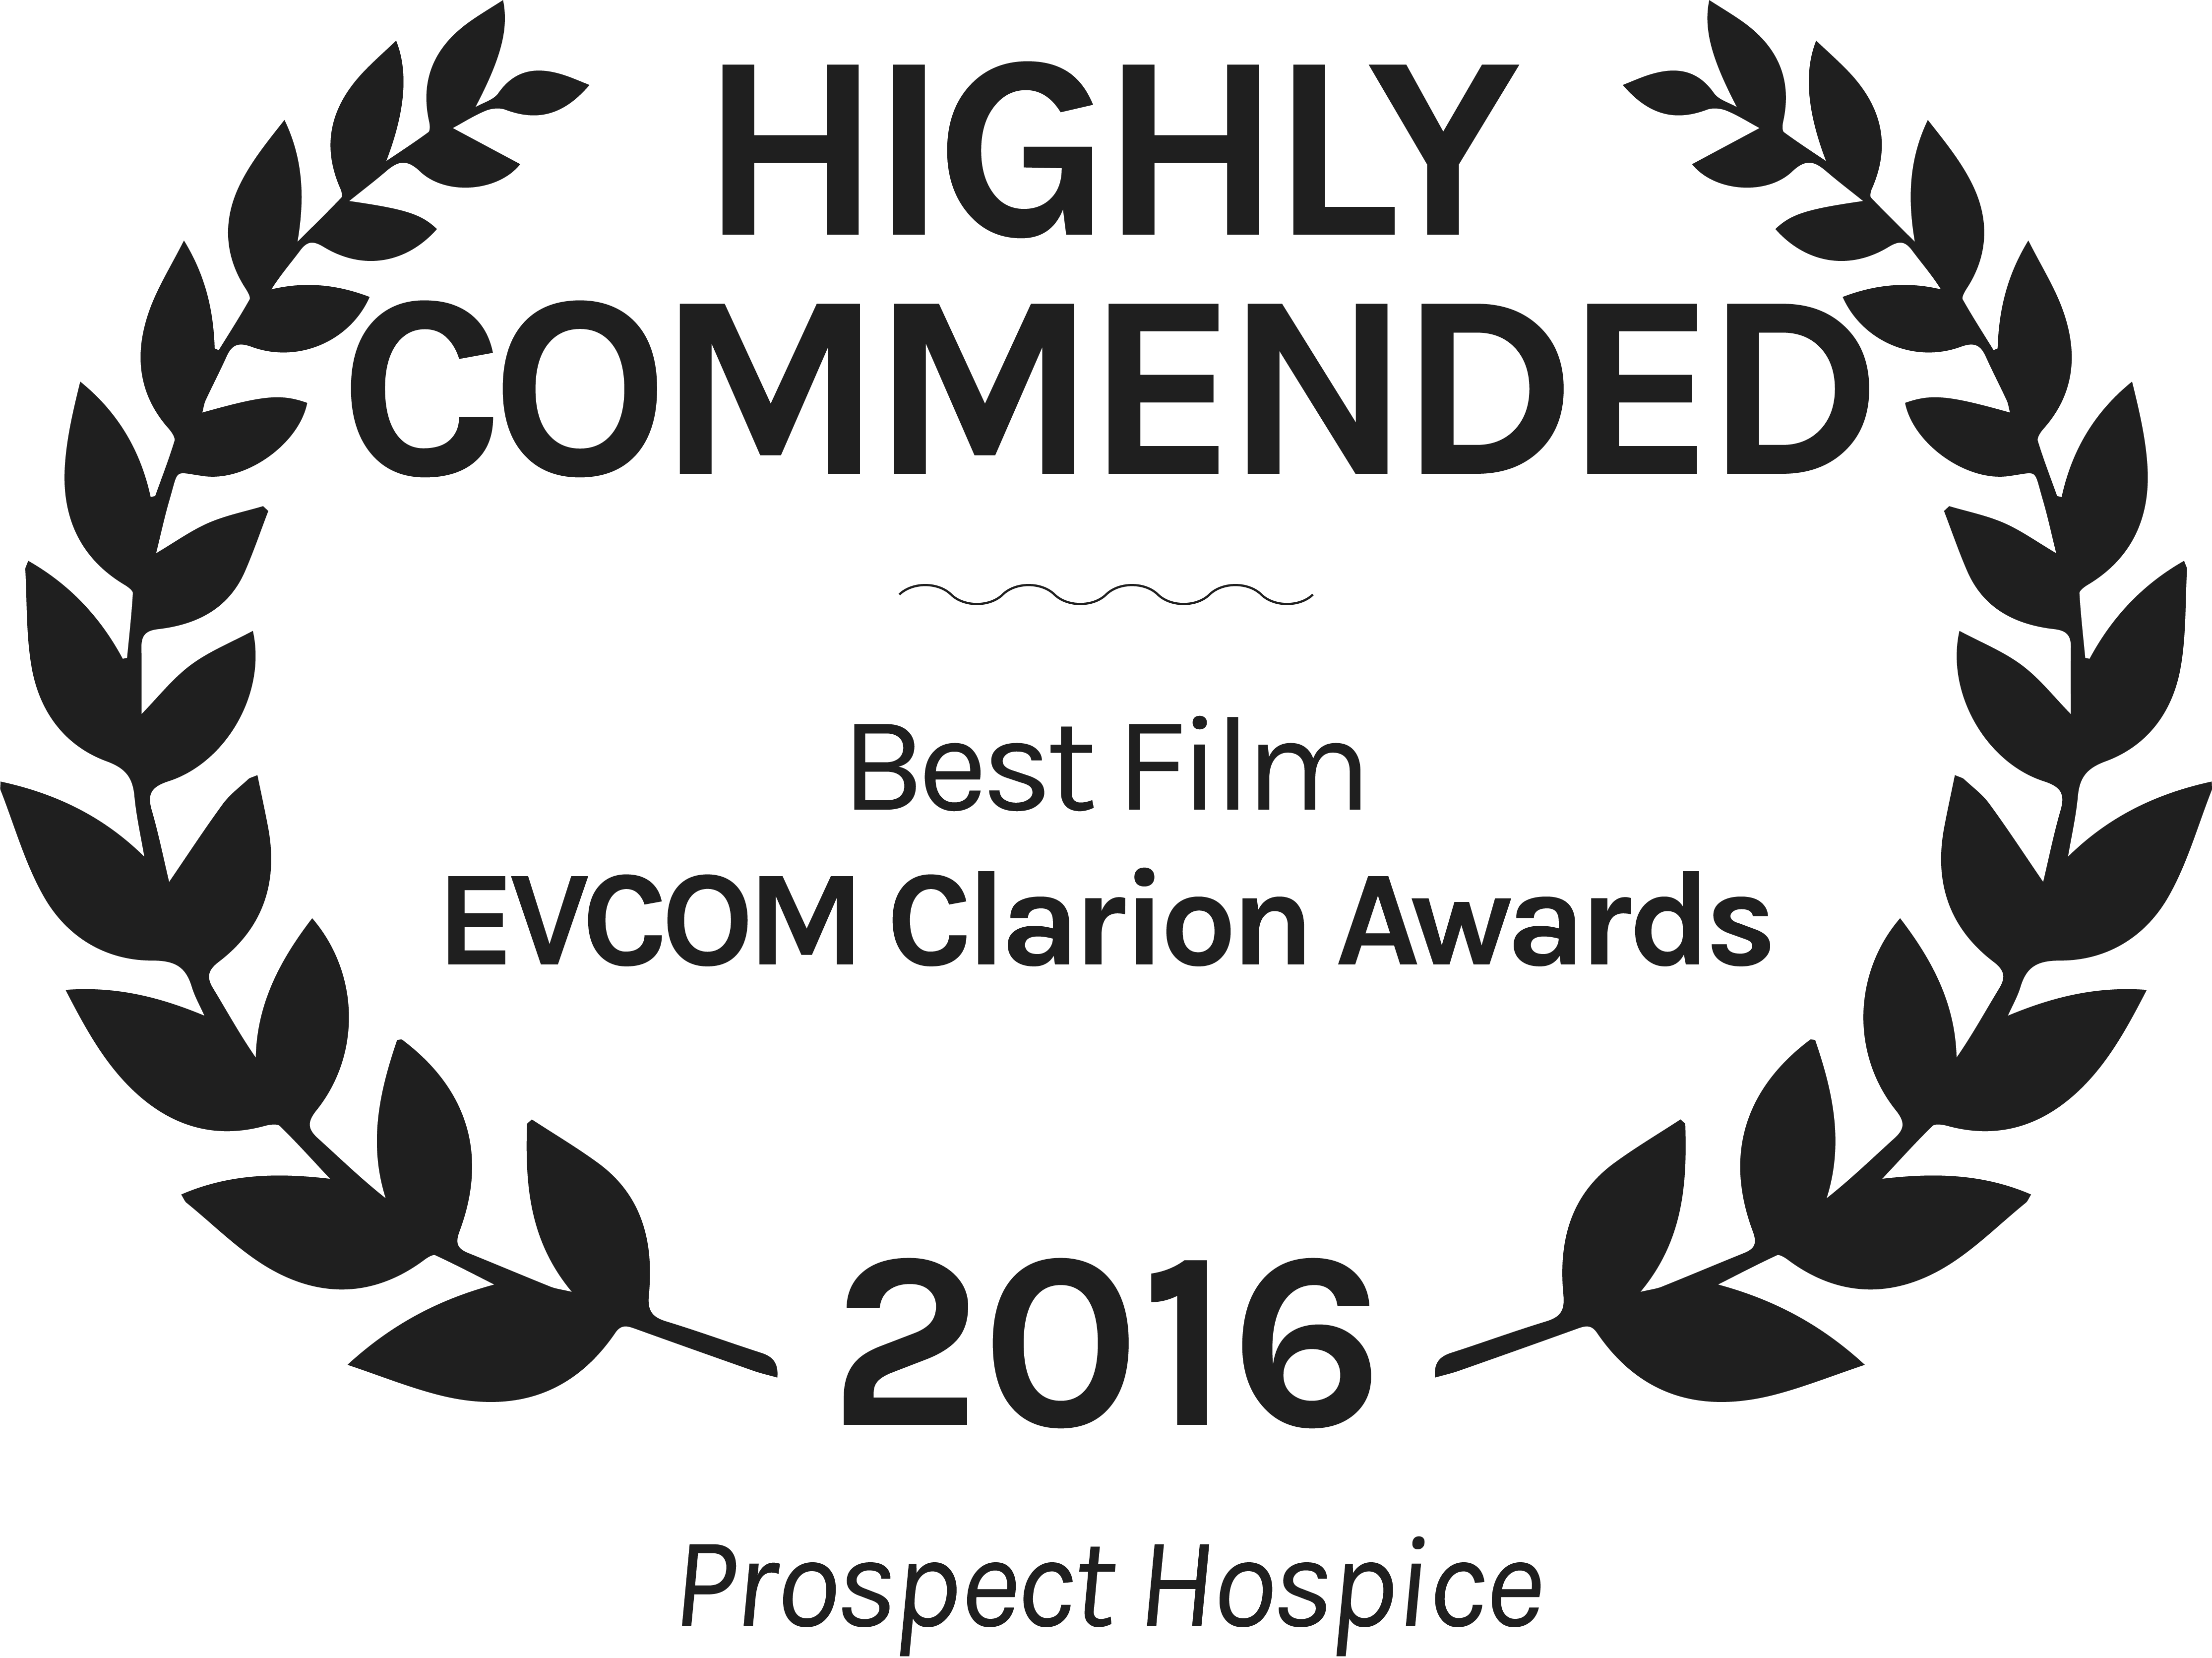 Prospect-Hospice-Highly-Commended-EVCOM-Clarion-Awards-2016.png